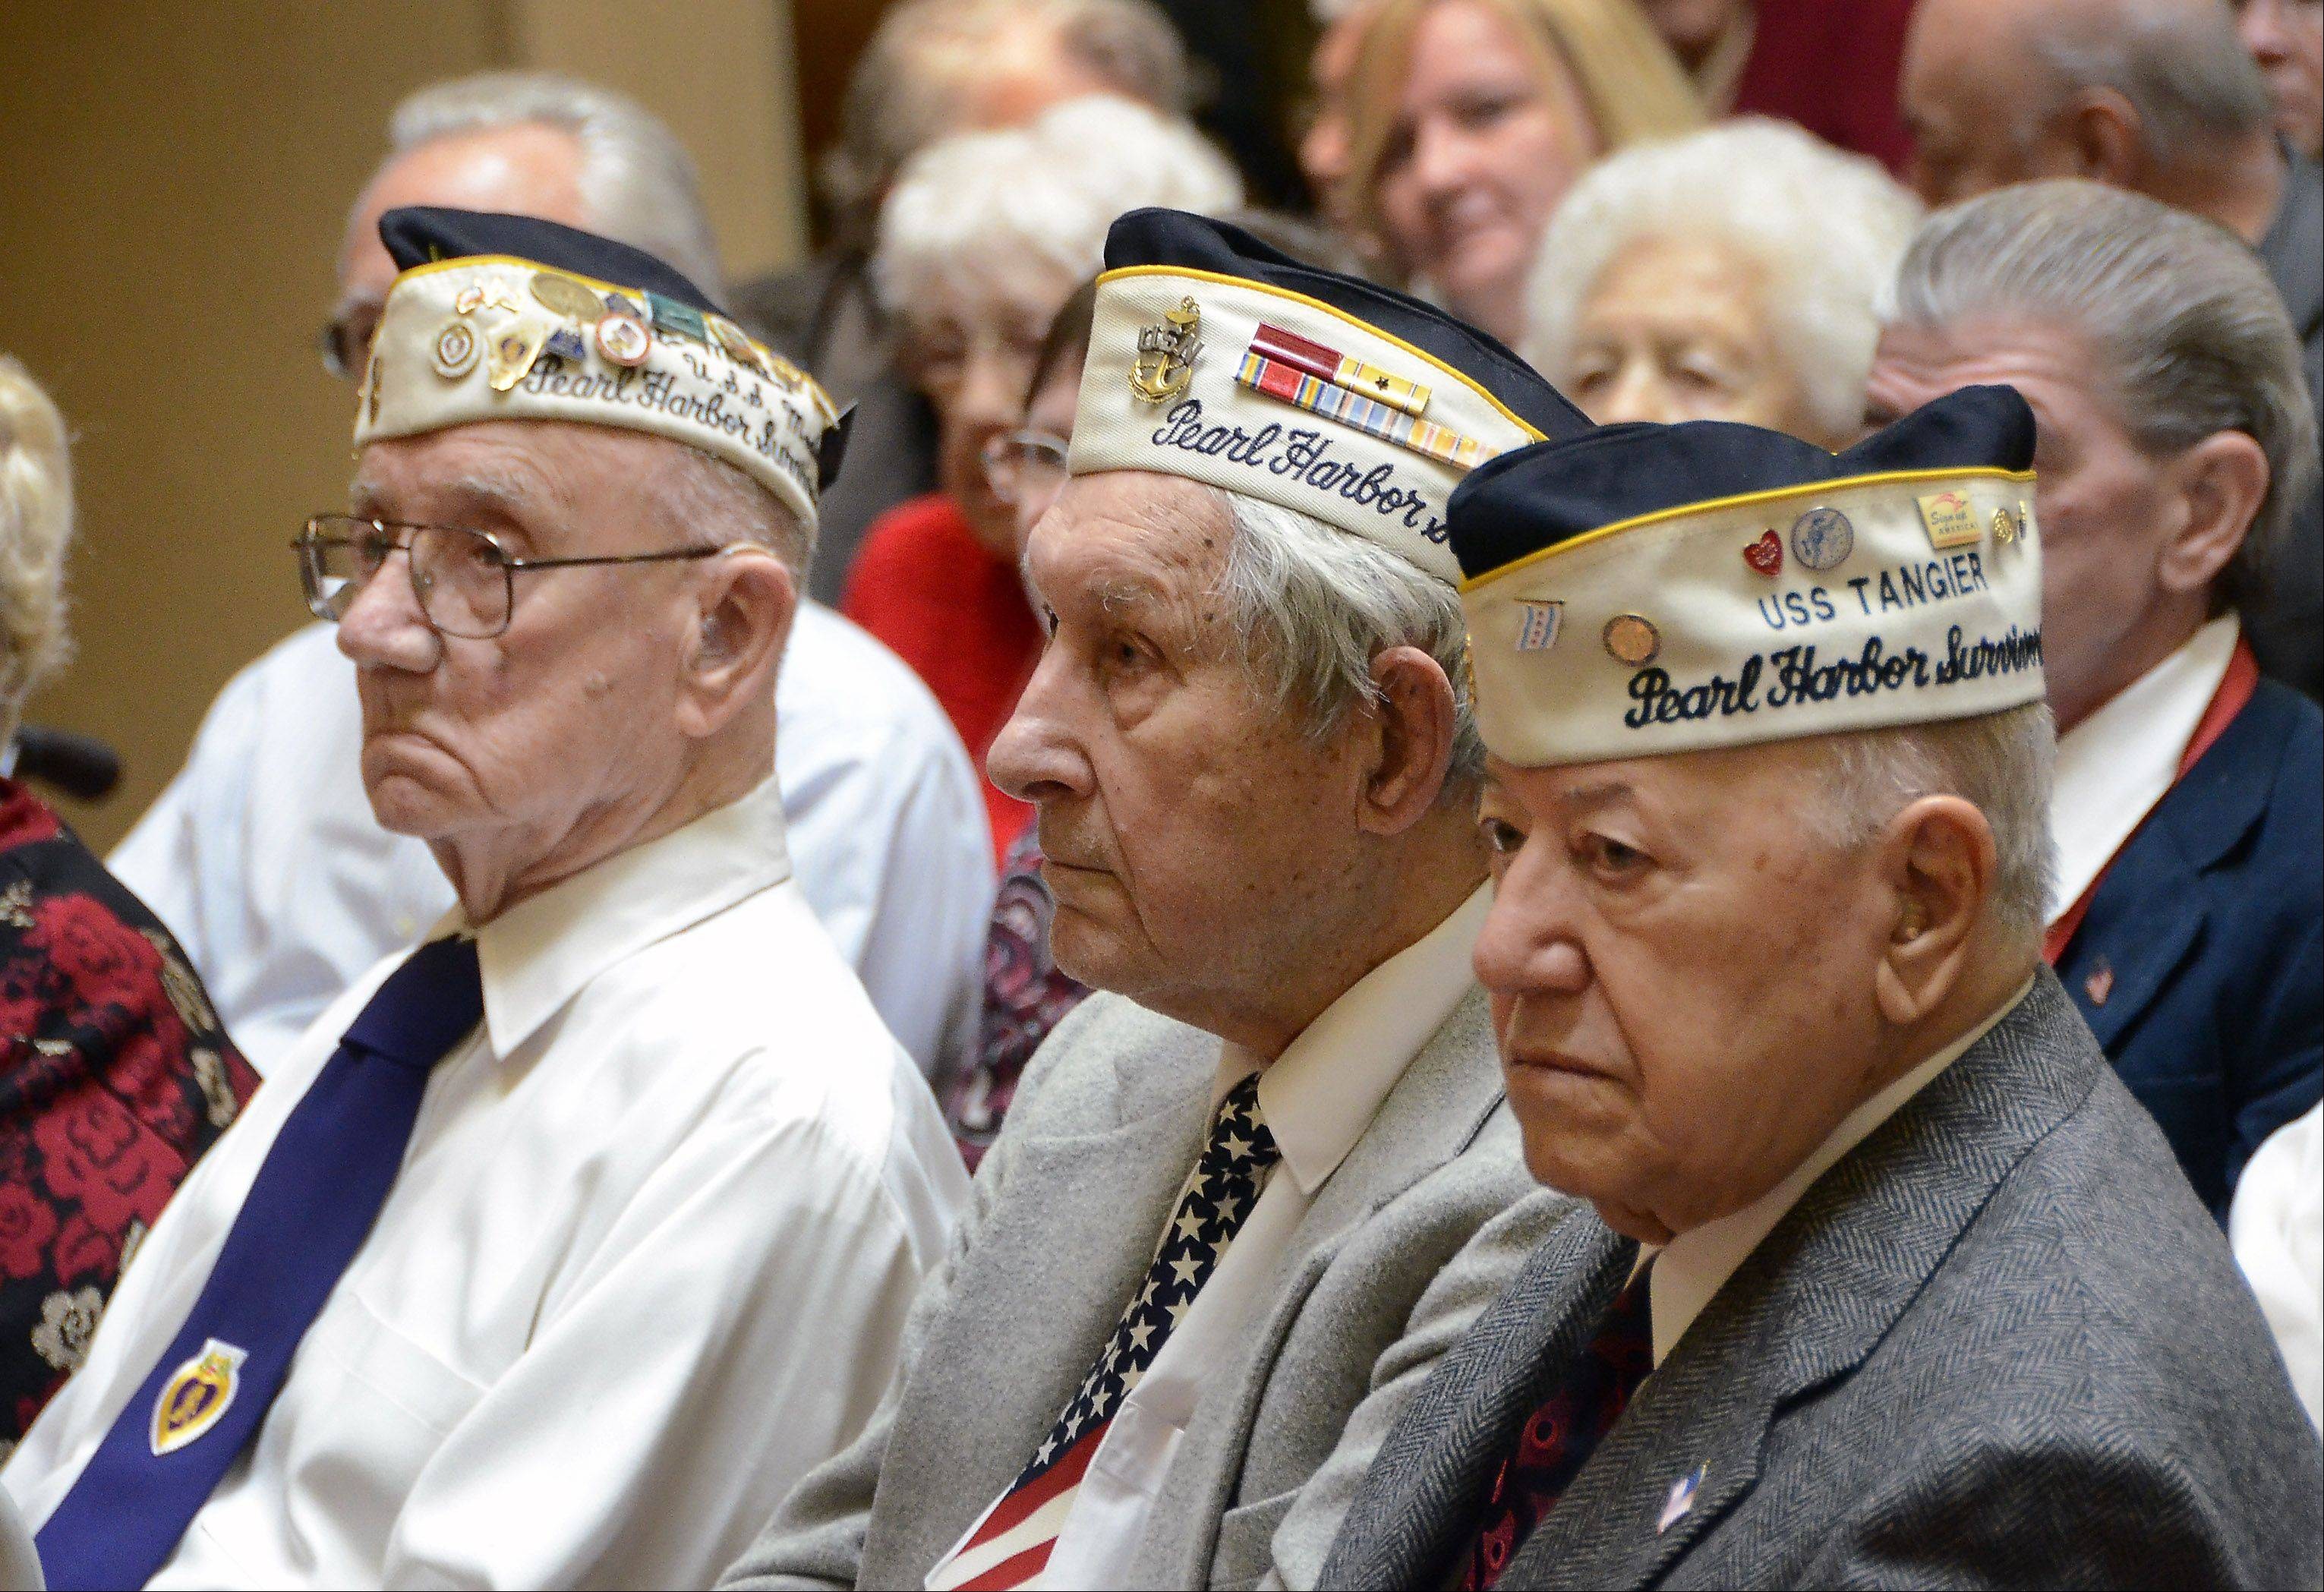 Pearl Harbor attack survivors Ed Block, of the USS Medussa, of LaGrange; James Lyle Hancock, of the Navy Yard Dispensary, of Skokie; Joe Triolo, of the USS Tangier, Waukegan listen to speakers at a remembrance ceremony at Oakton Place retirement home in Des Plaines.